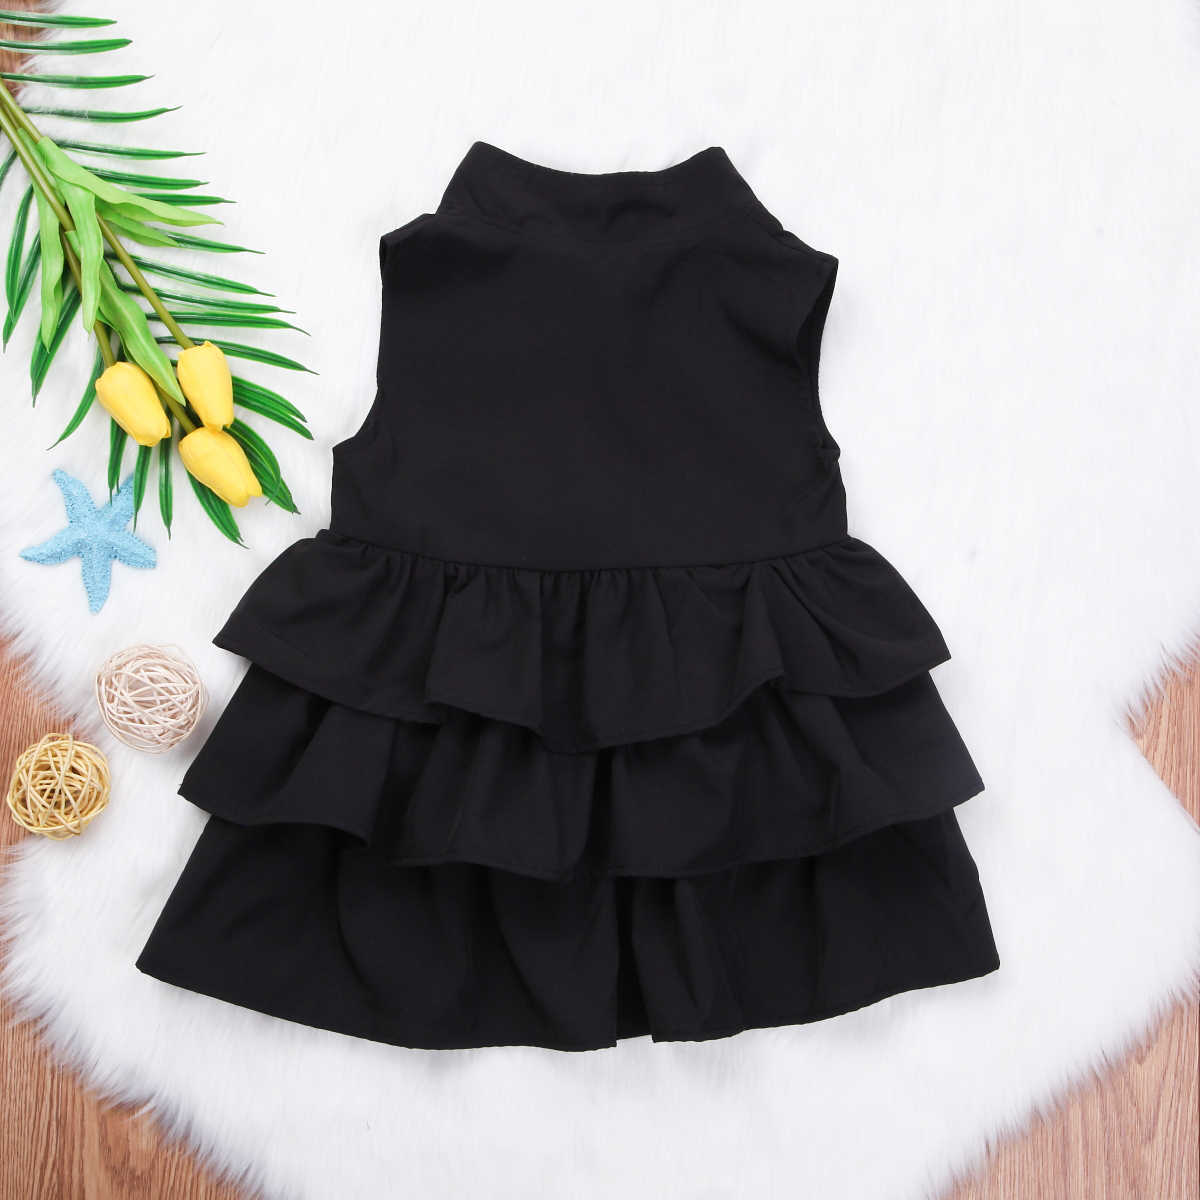 Cute Toddler Kids Baby Party Princess Ruffle Tutu Princess Formal Sleeveless Dress For Girls Clothes Mini Dresses